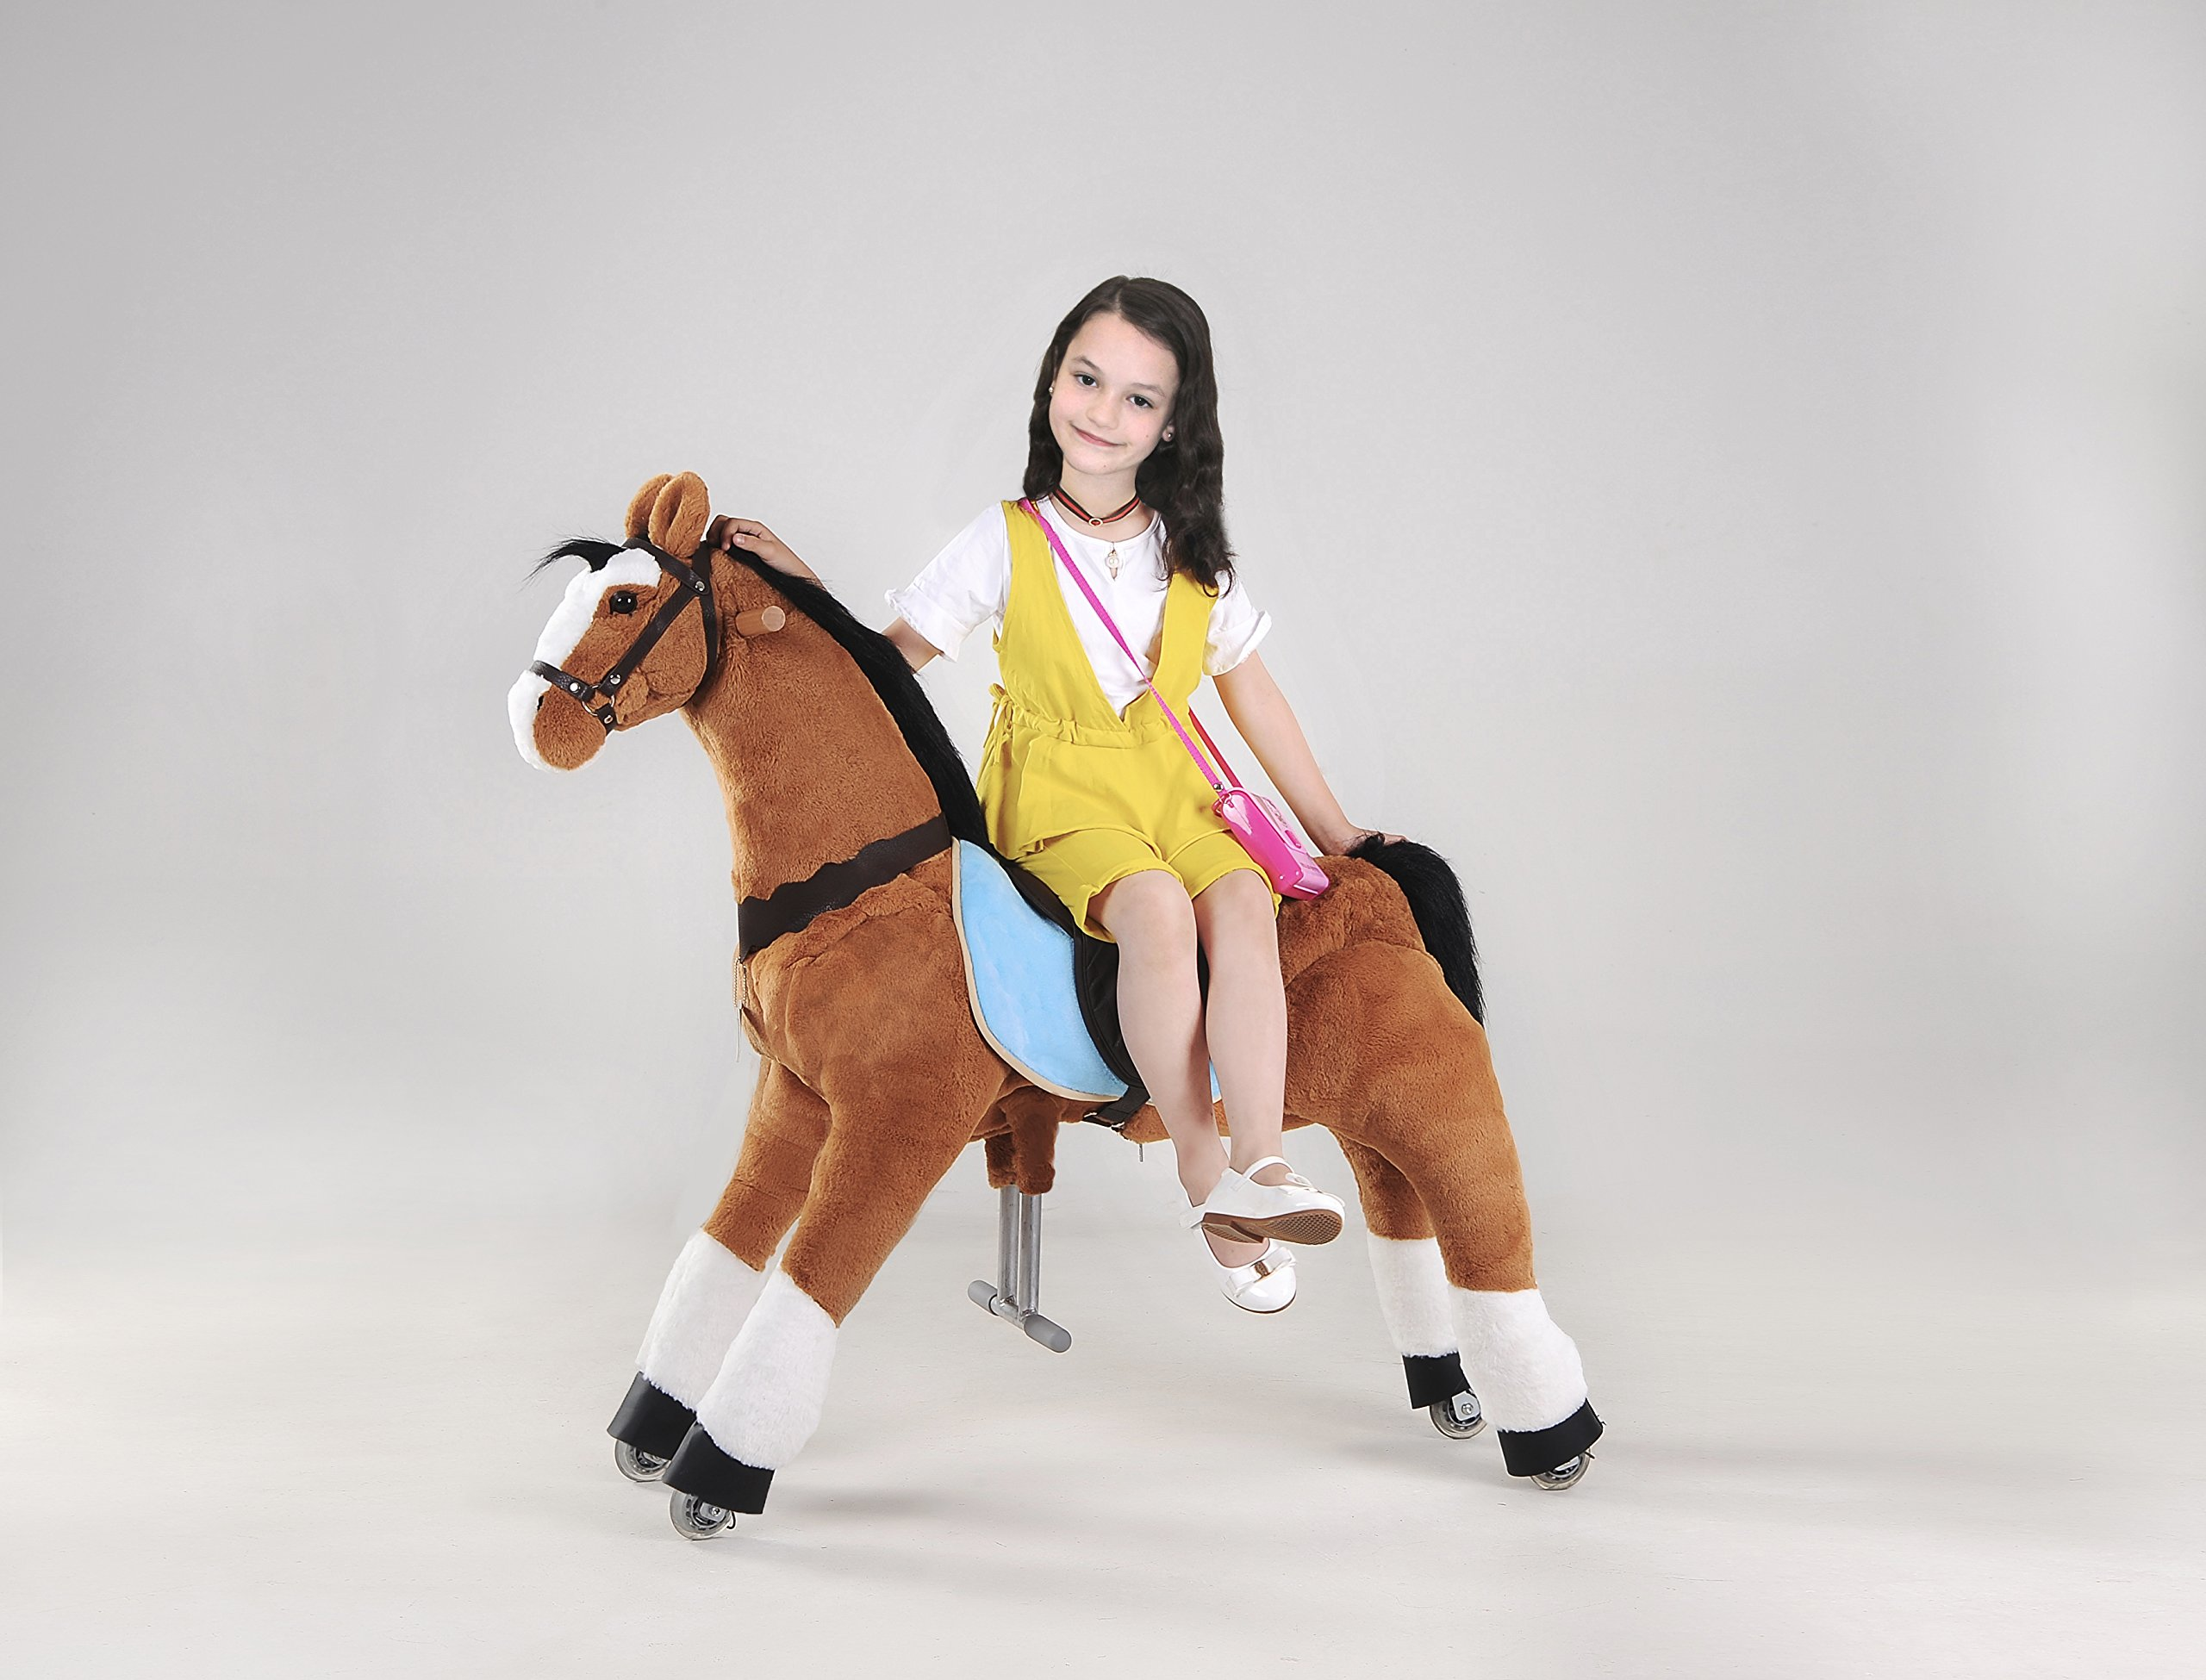 UFREE Action Pony, Large Mechanical Horse Toy, Ride on Bounce up and down and Move, Height 44'' for Children 6 Years to Adult black mane and tail